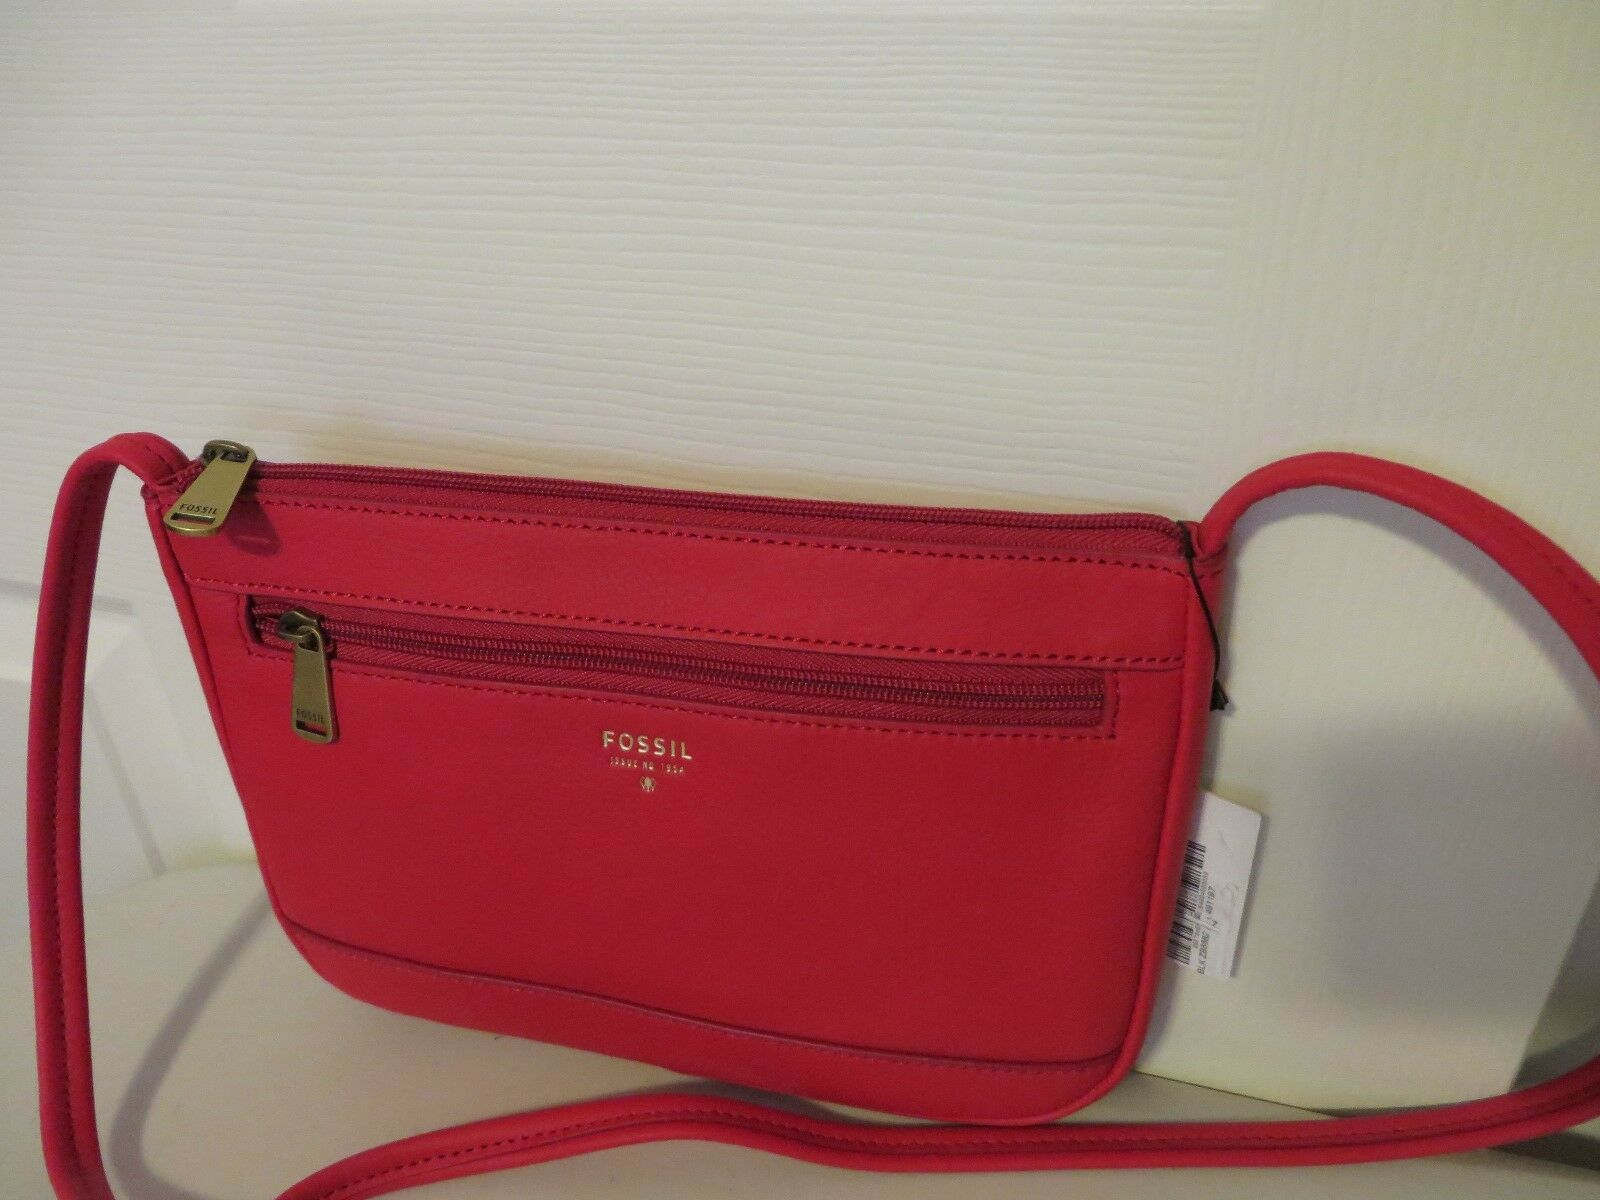 b53391e3f6 Fossil Real Red Leather Gift Mini Crossbody Messenger Bag Zb6682622 for  sale online